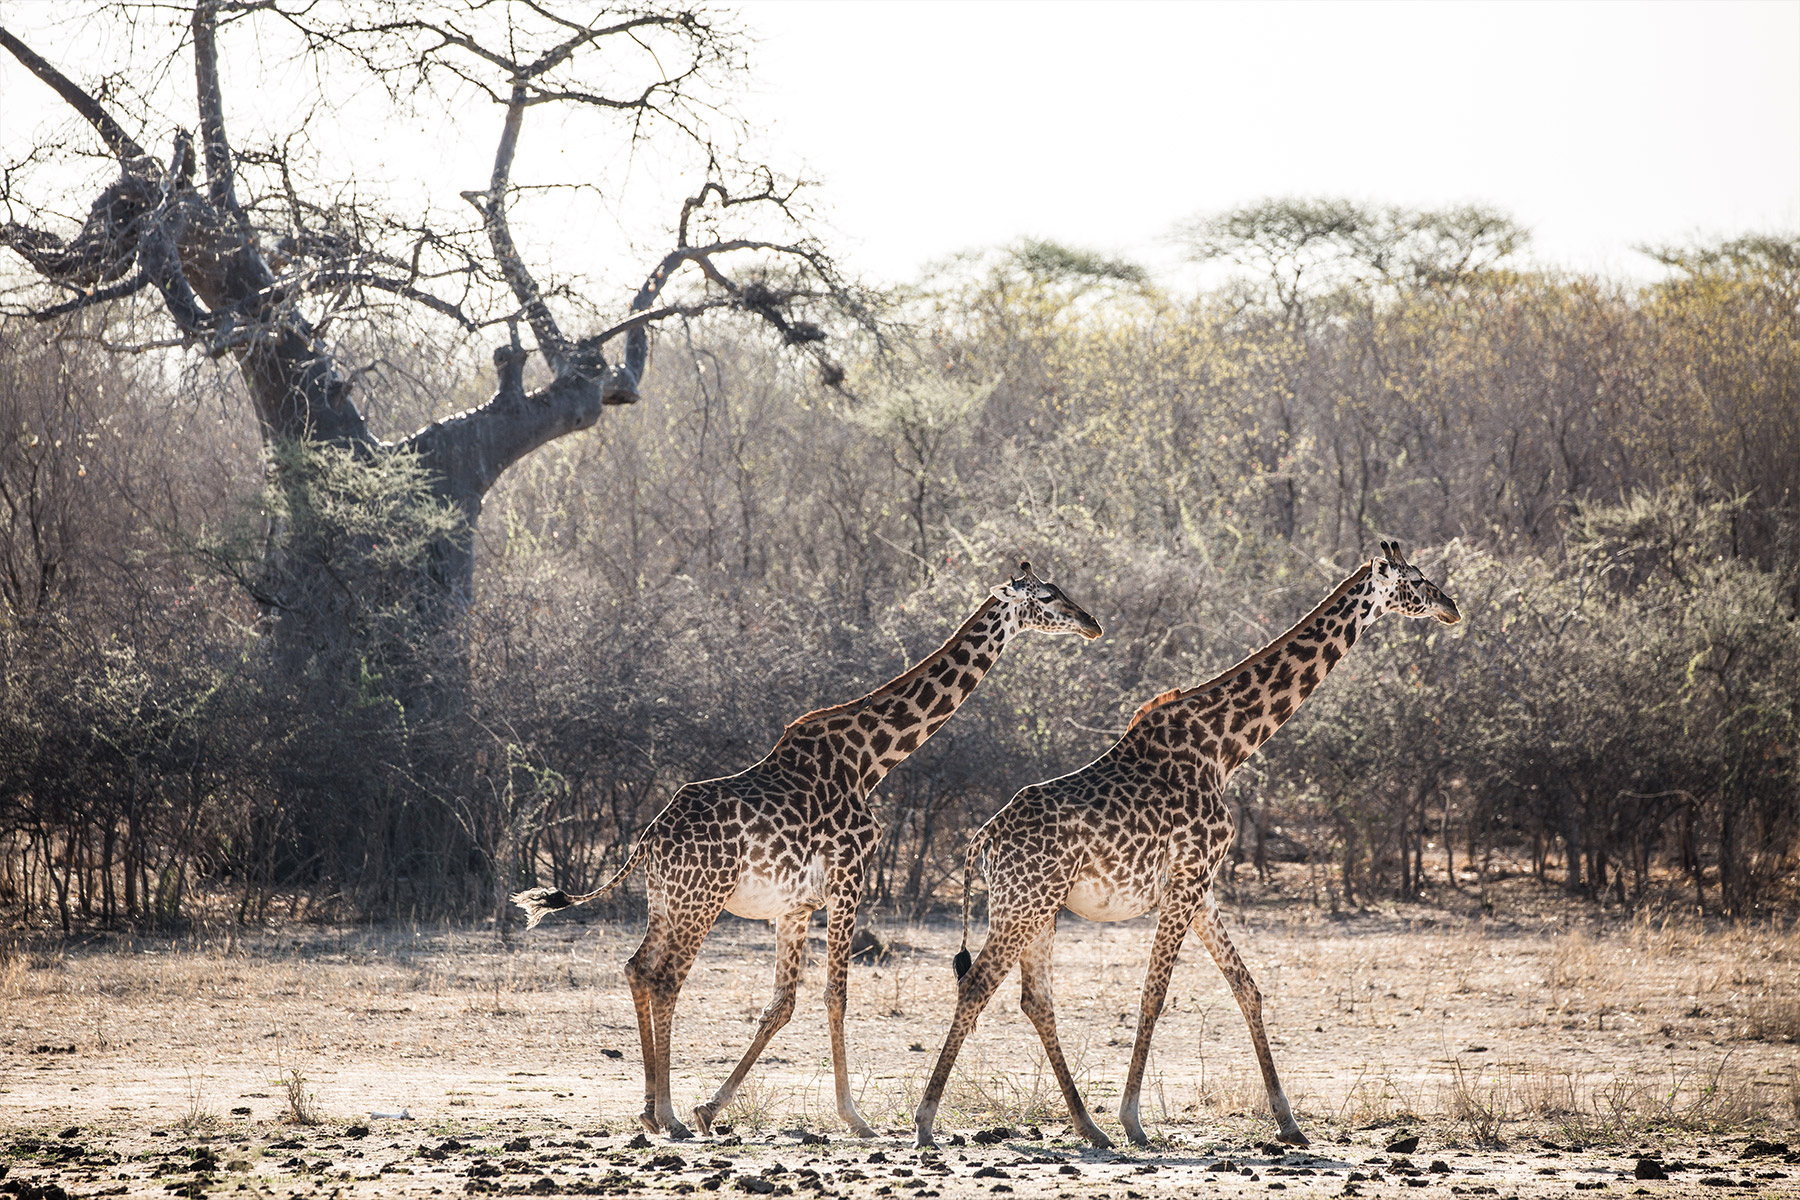 Safari Guide in Selous Game Reserve 2021: Nyerere NP